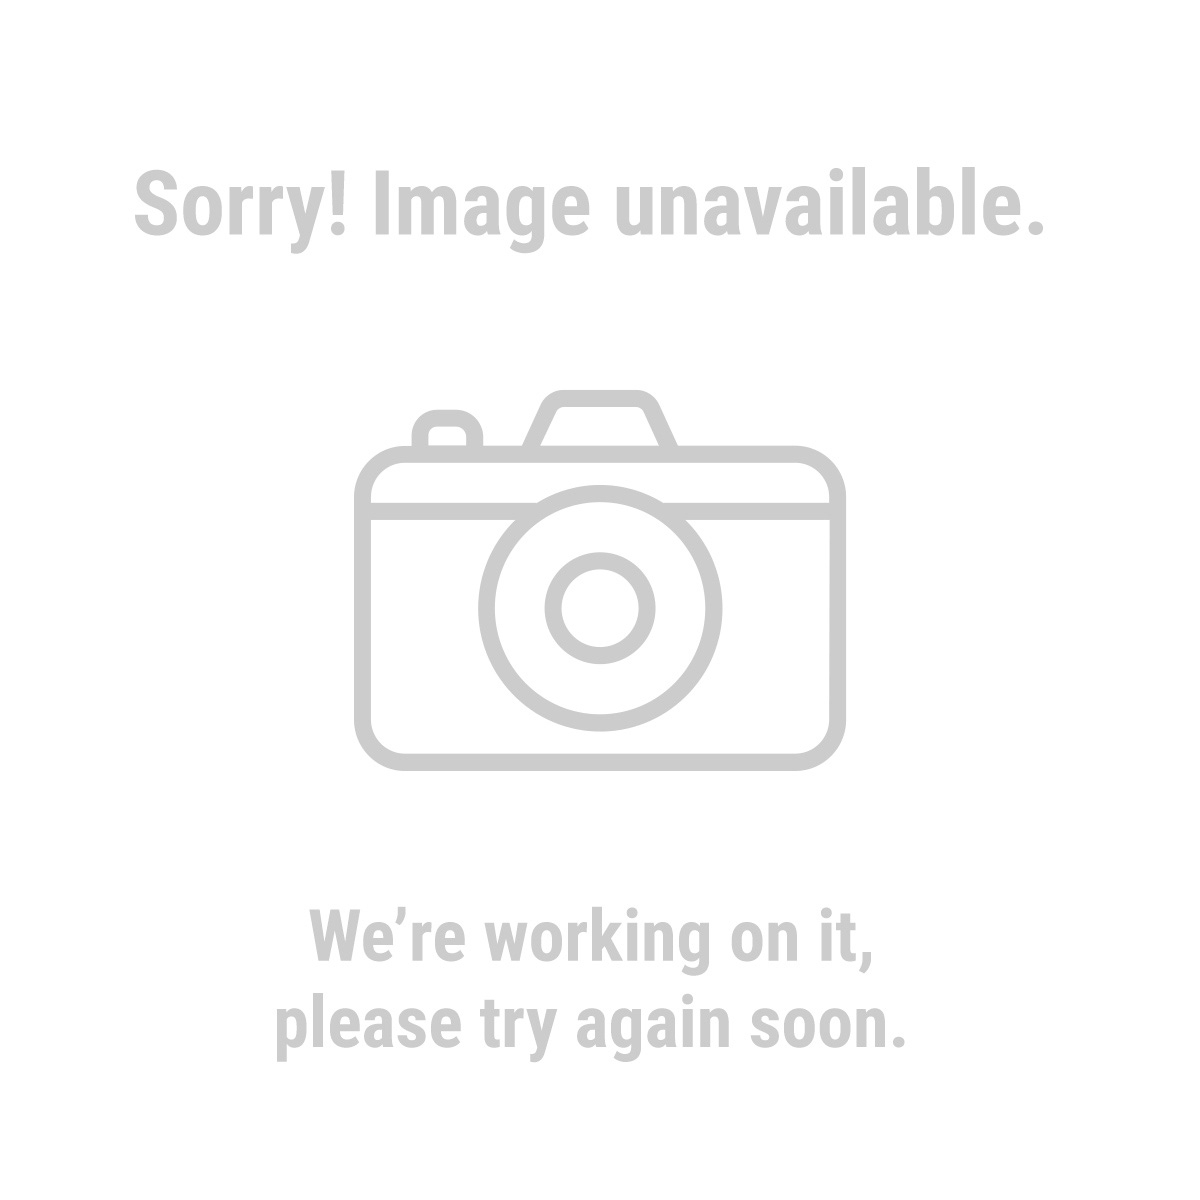 47644 105 Piece Polishing/Abrasive Accessory Kit